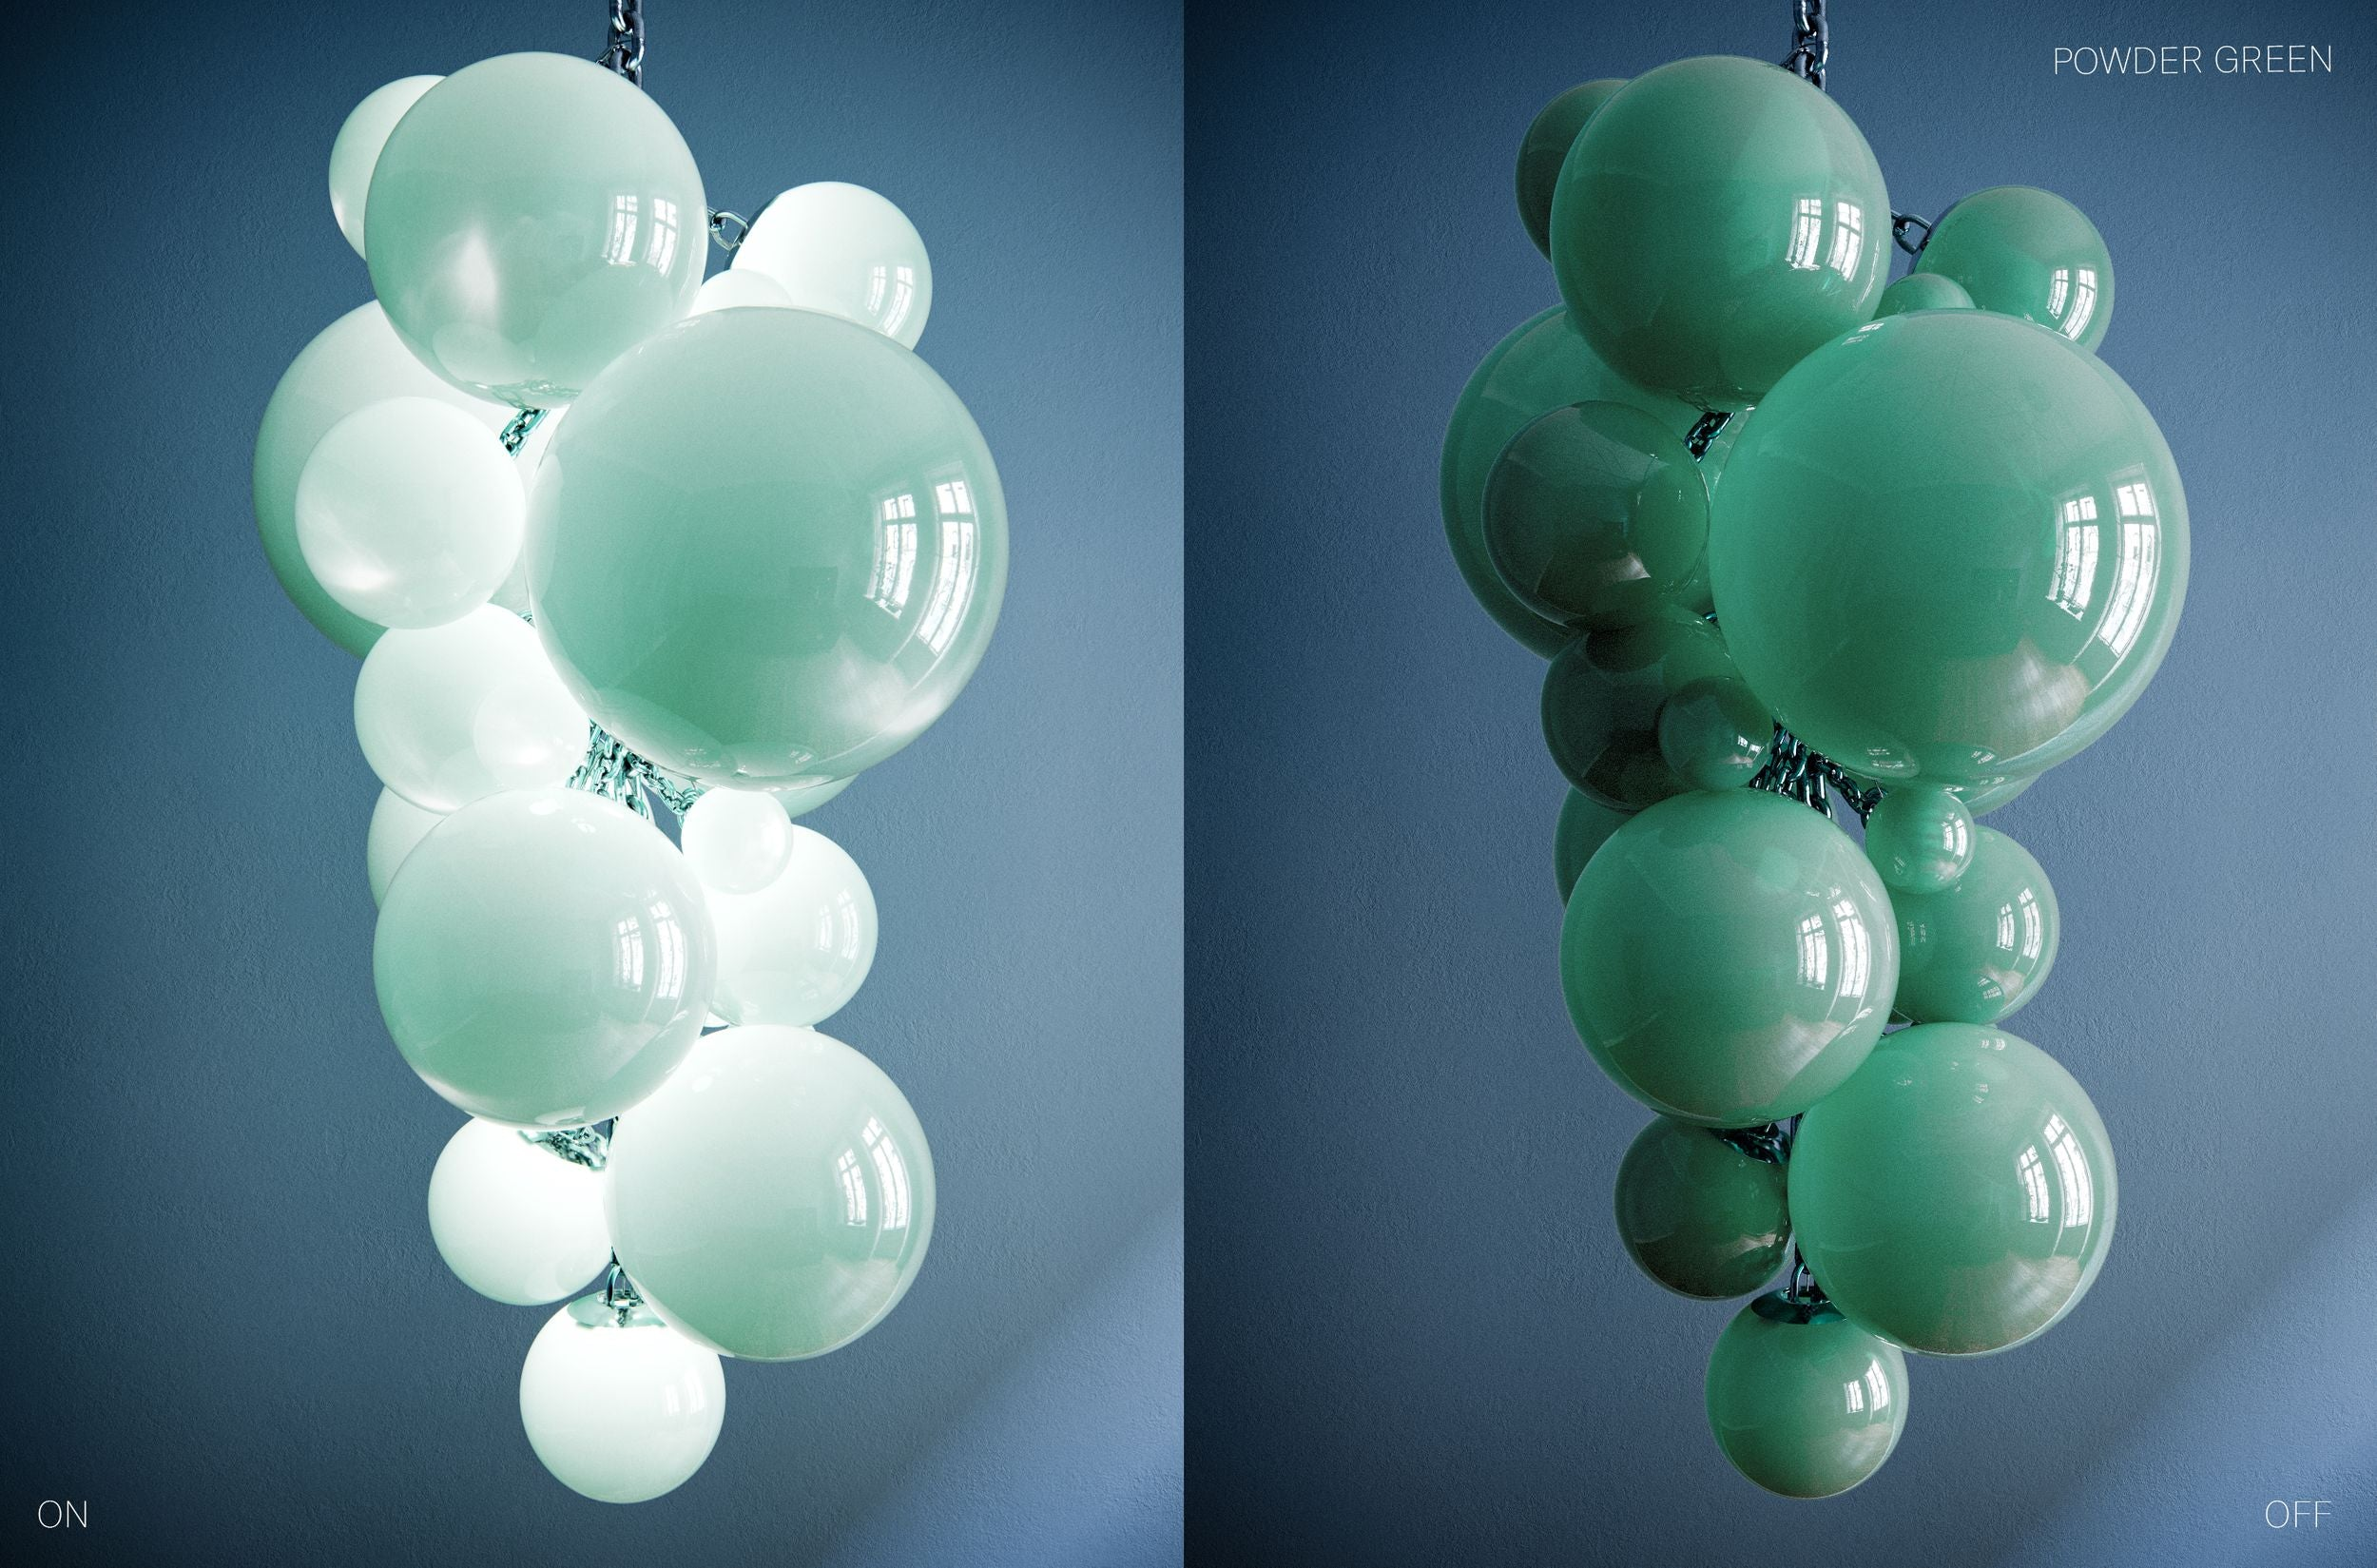 Kuulas Glass Chandelier in Powder Green Cameron Design House